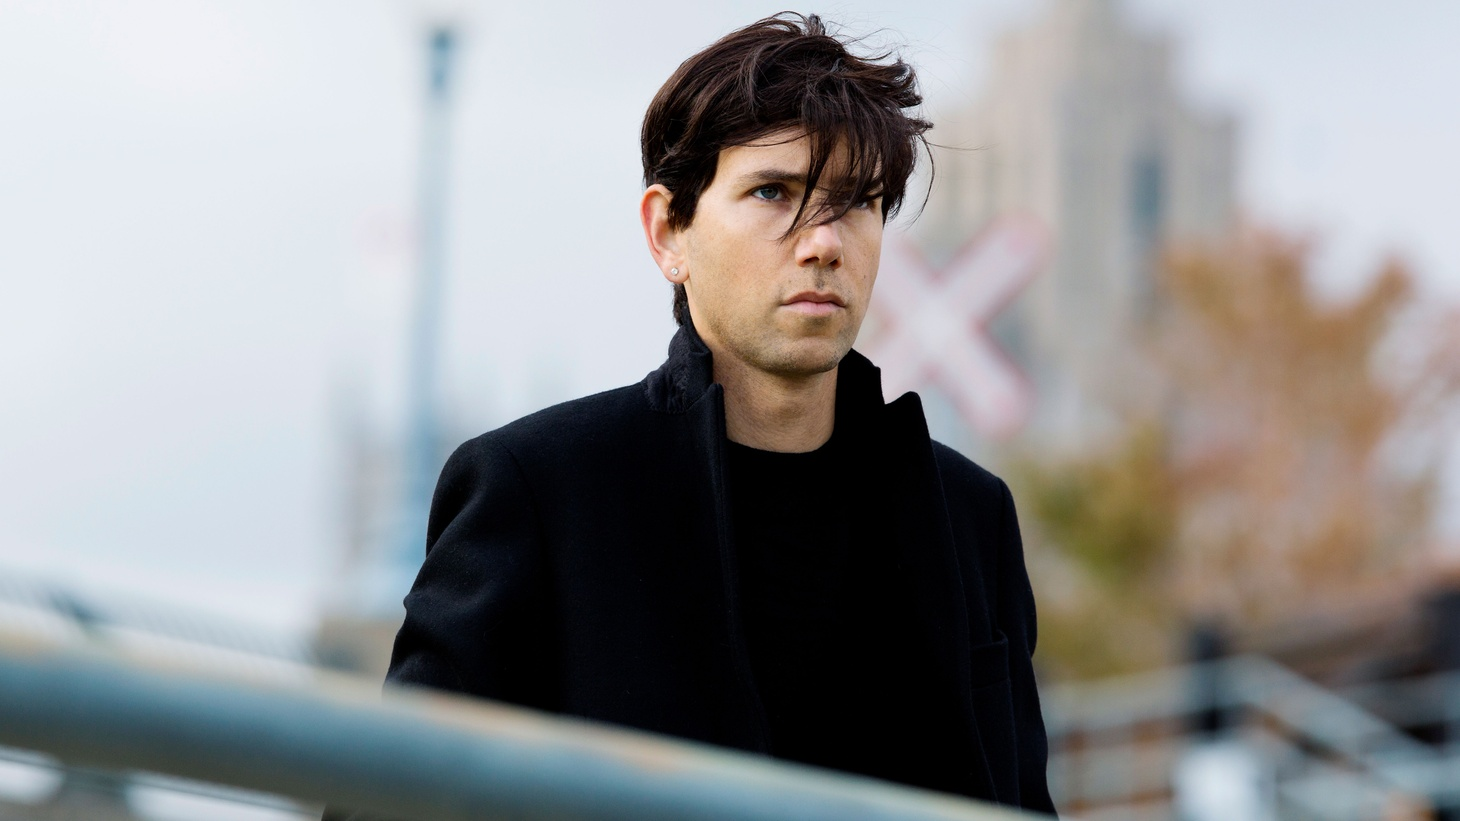 Globe-trotting DJ and producer TIGA shares an exclusive mix in advance of his upcoming appearance at A Club Called Rhonda at Sound Nightclub on January 21.